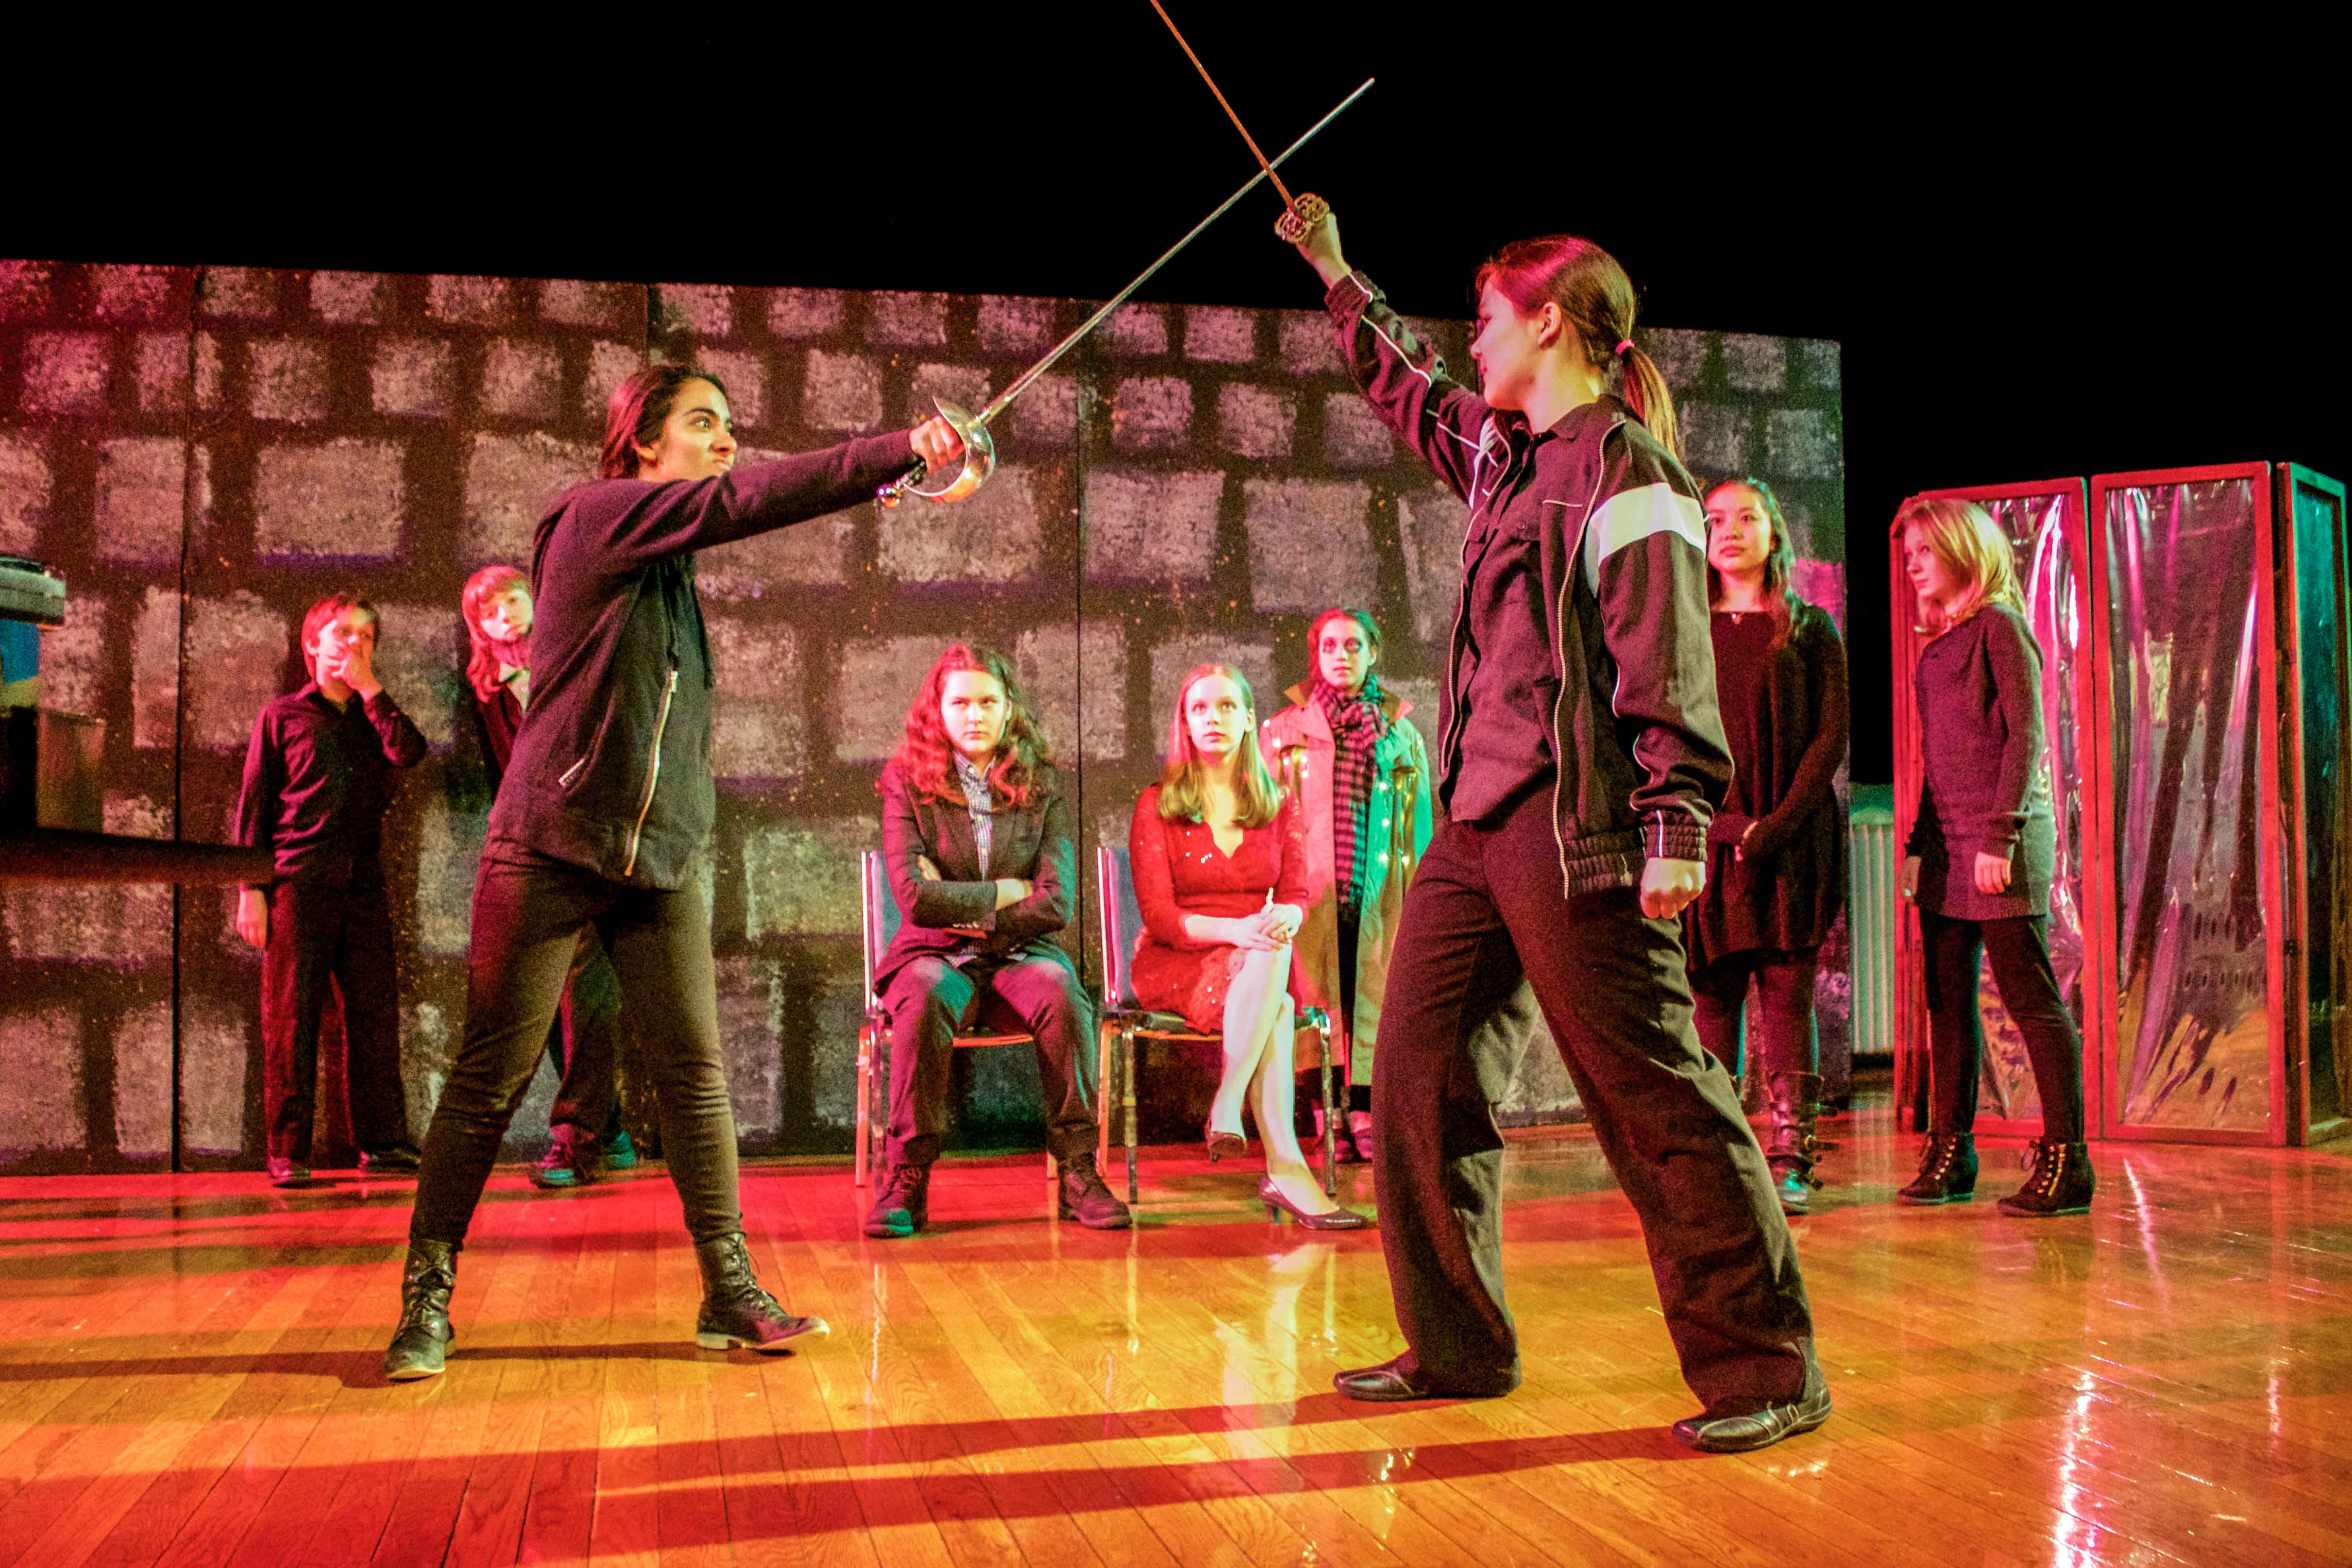 Daria Martz, 13, and Alison Chan, 14, duel as part of Oberlin Children's Shakespeare Project. The group will perform Hamlet on Friday and Saturday at 7 p.m. in Wilder Main.